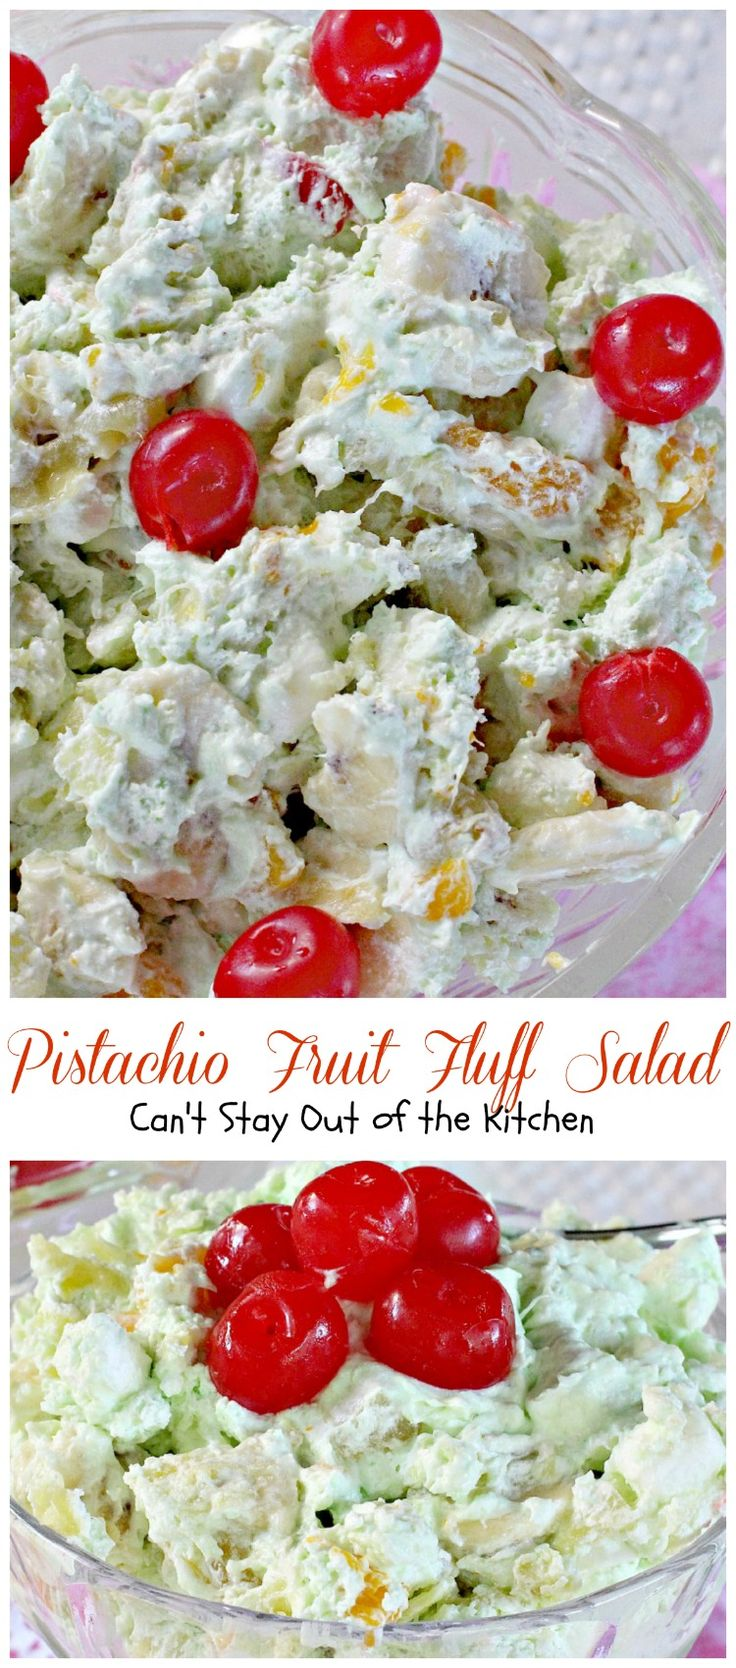 Pistachio Fruit Fluff Salad   Can't Stay Out of the Kitchen   Such a quick, easy and refreshing #fruitsalad for summer barbecues and #holidays. #fruit #salad